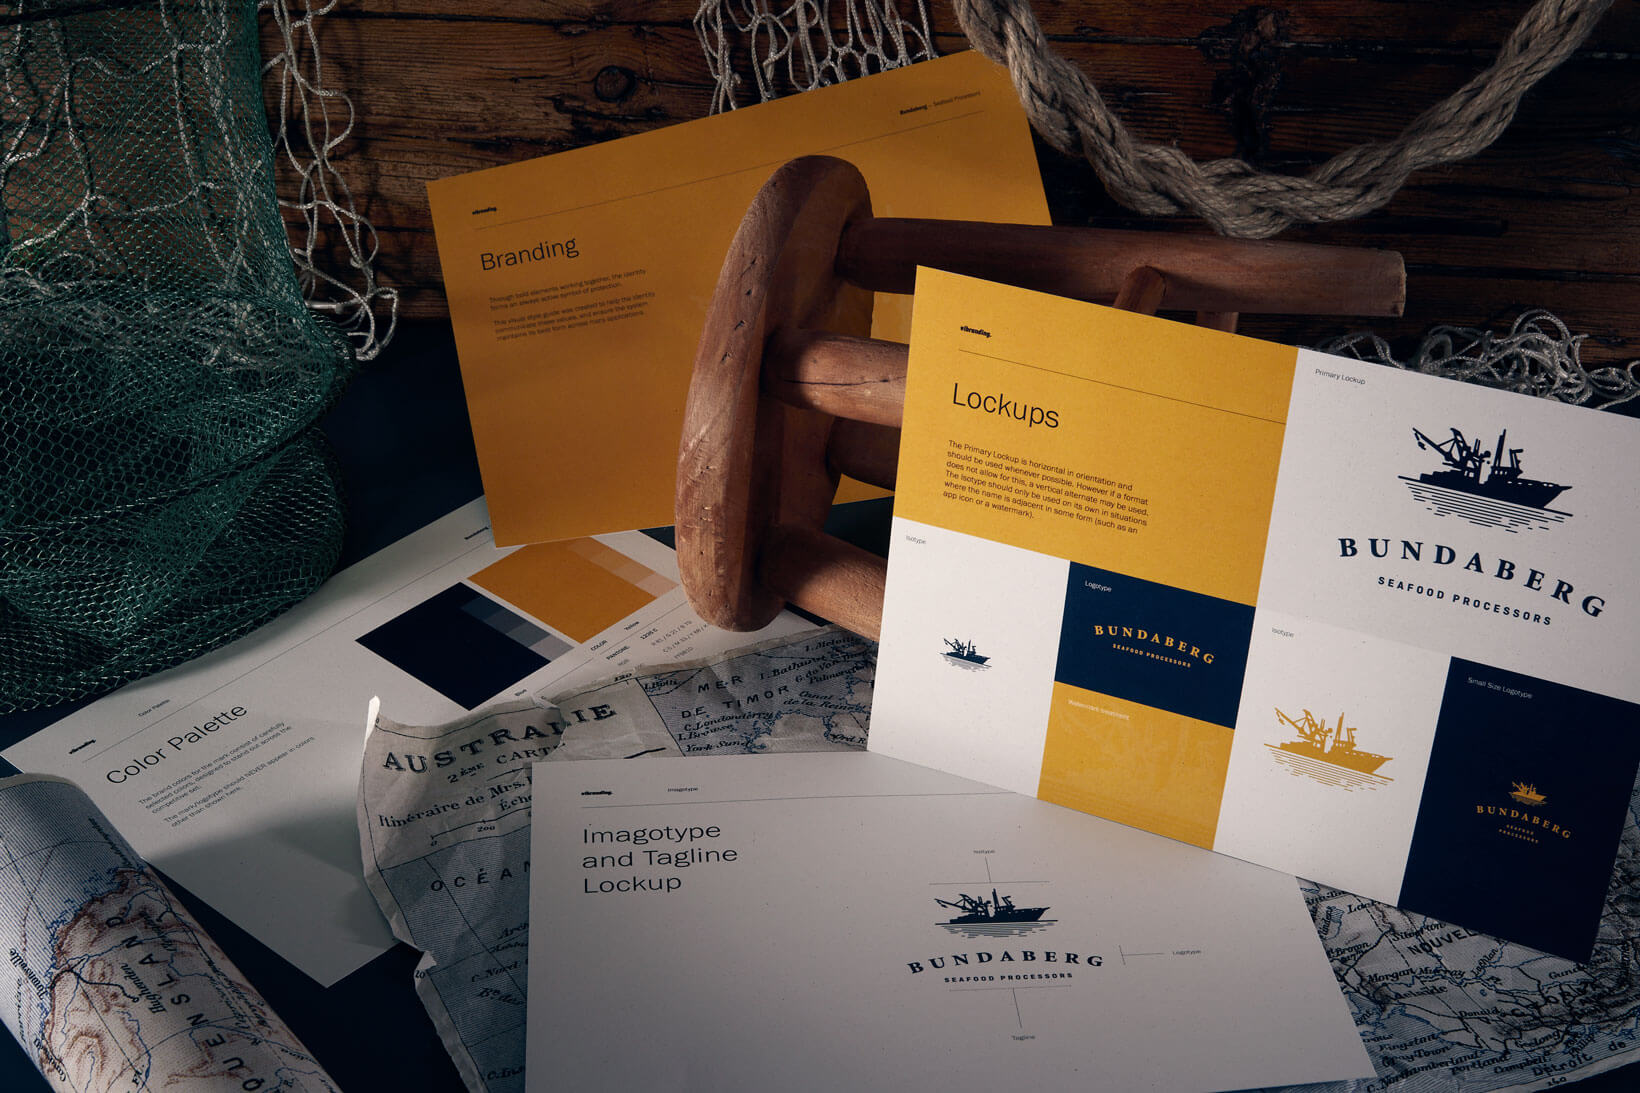 Bundaberg corporate identity logo design graphic design packaging brand book Vibranding